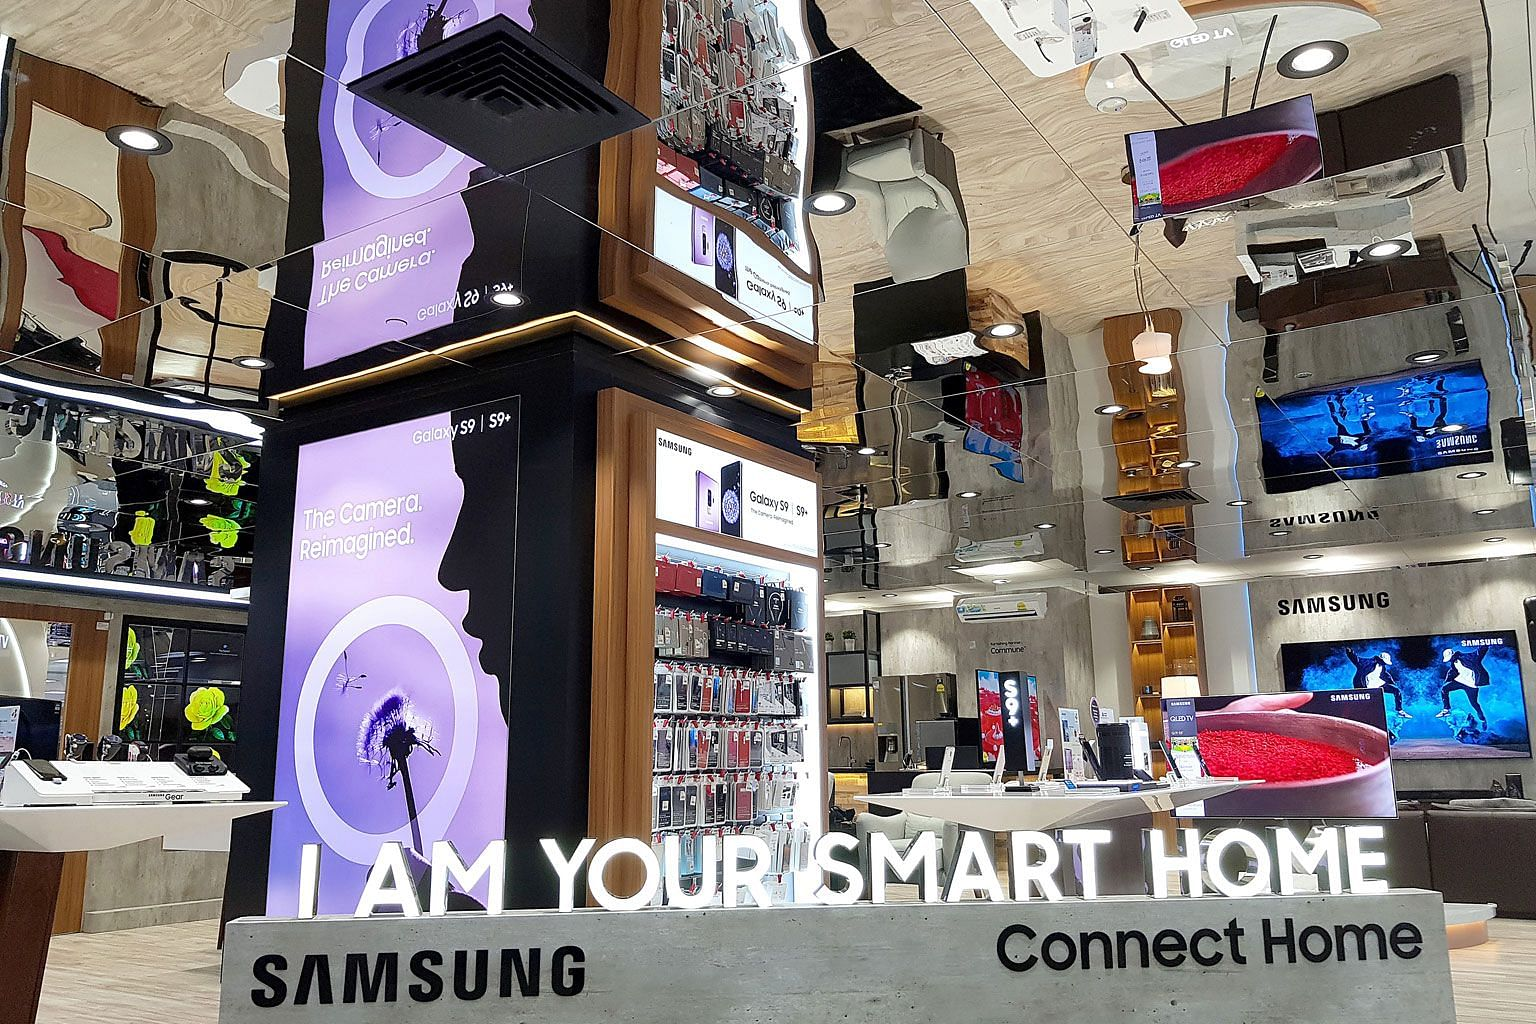 The Samsung Smart Home Experience space at Ngee Ann City is about the size of a five-room Housing Board flat.